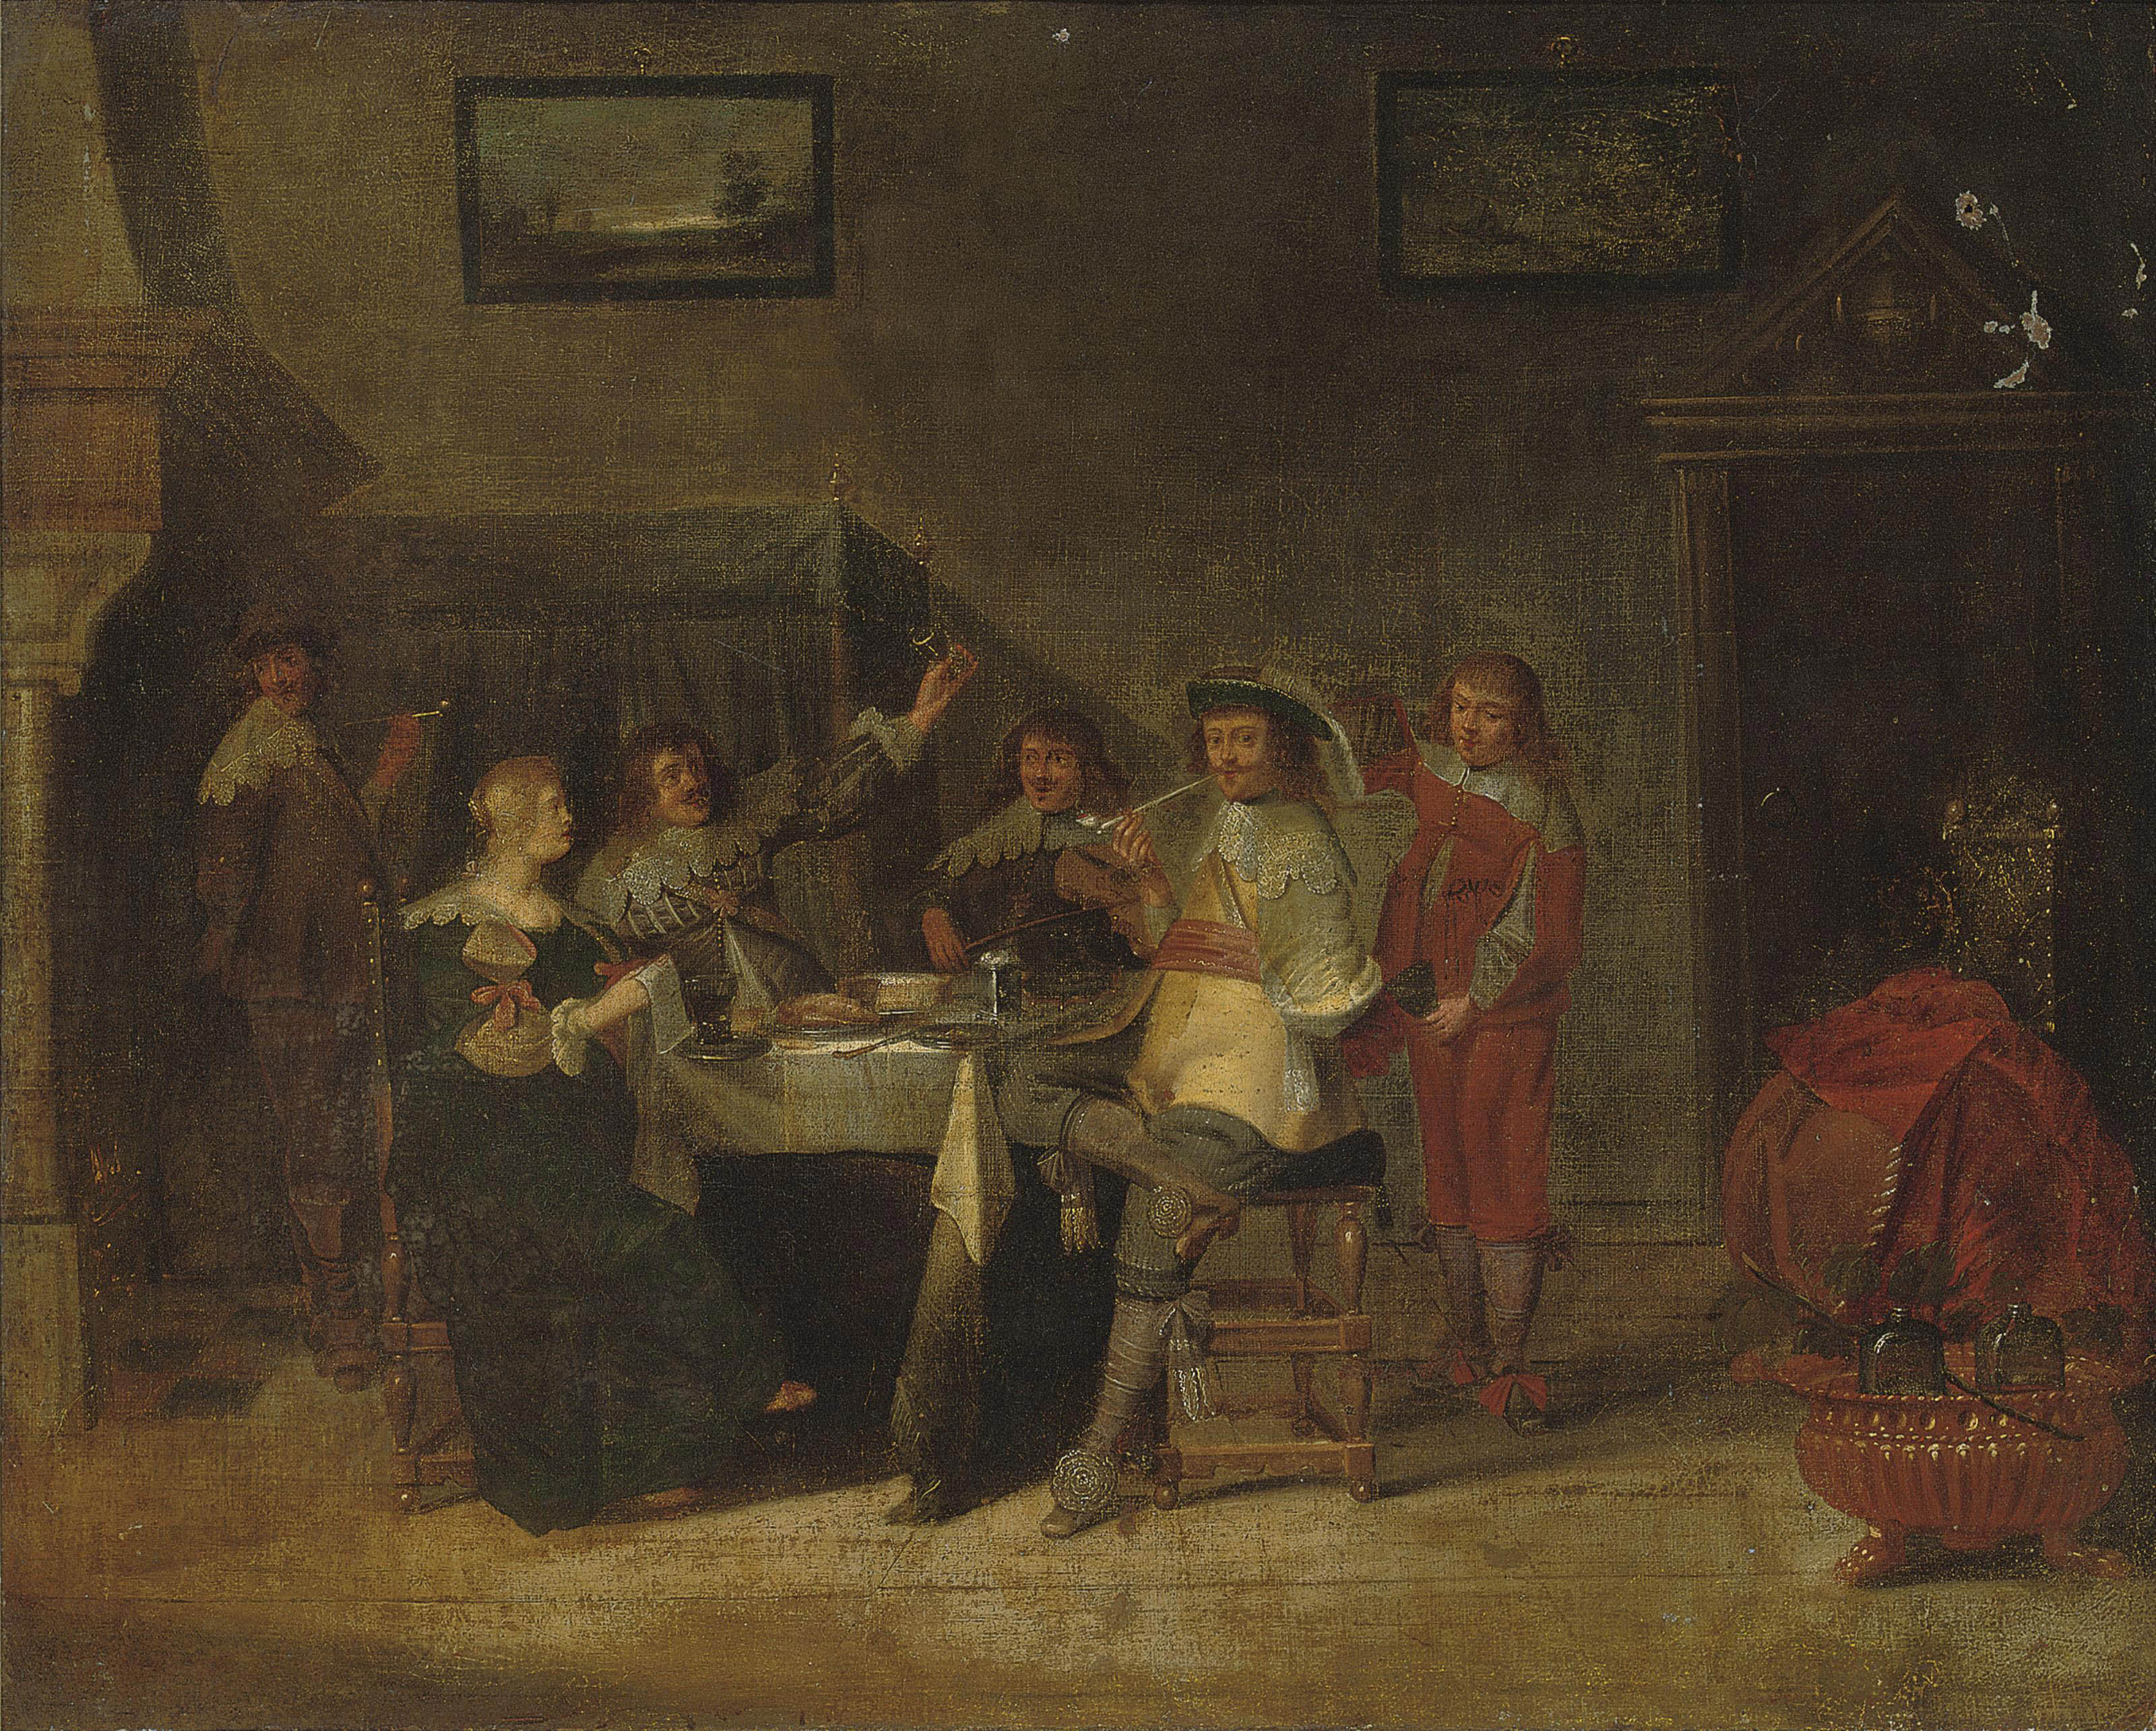 An elegant company making merry in an interior